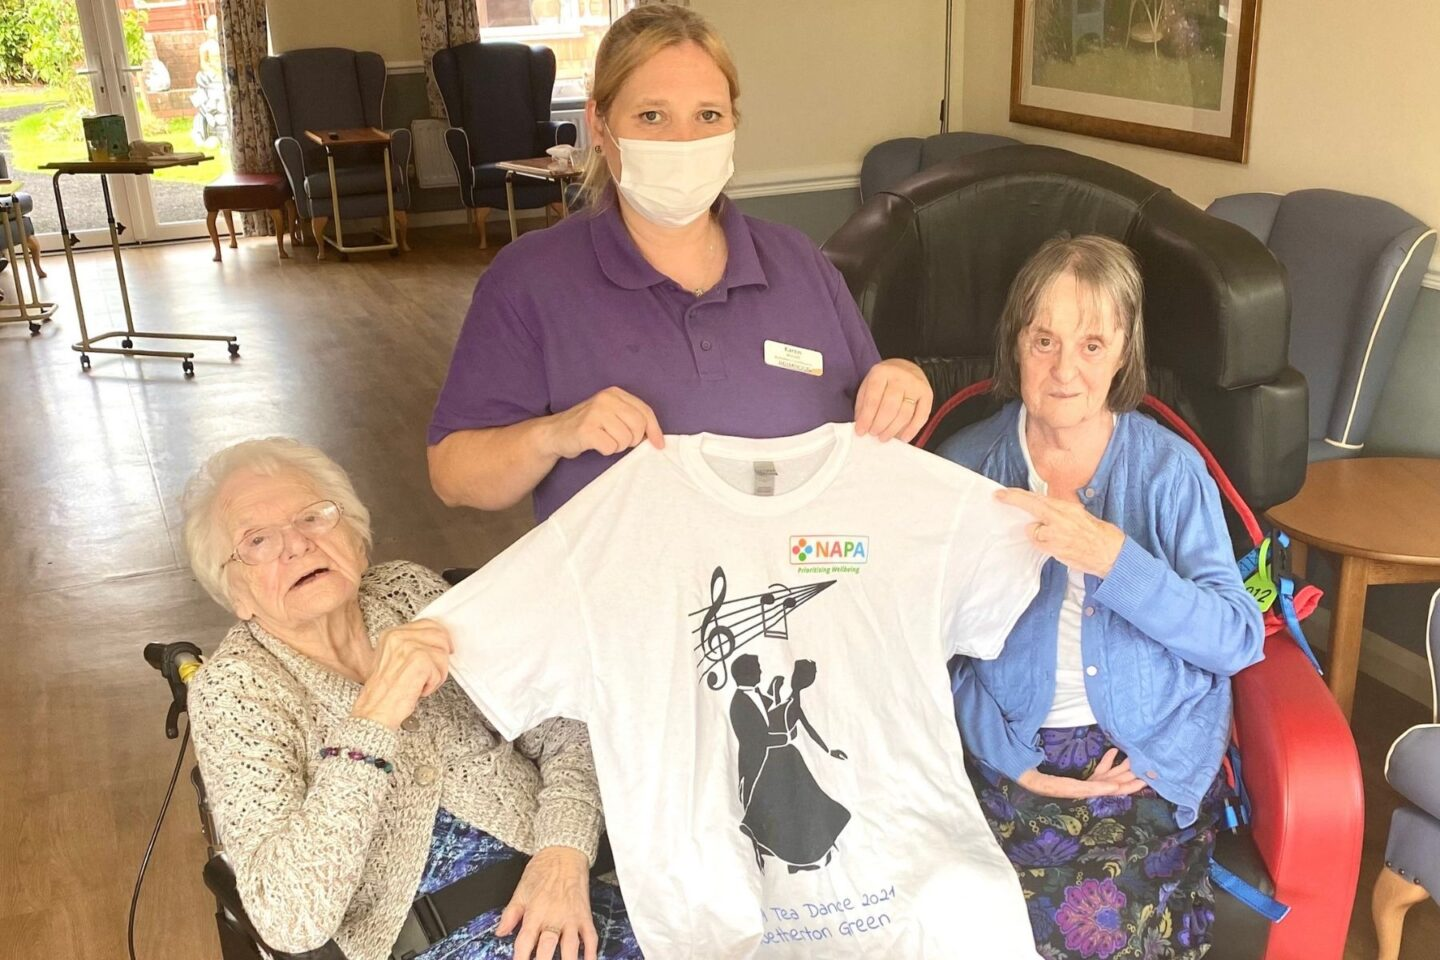 Netherton Green Residents Win NAPA T-shirt Design Competition!